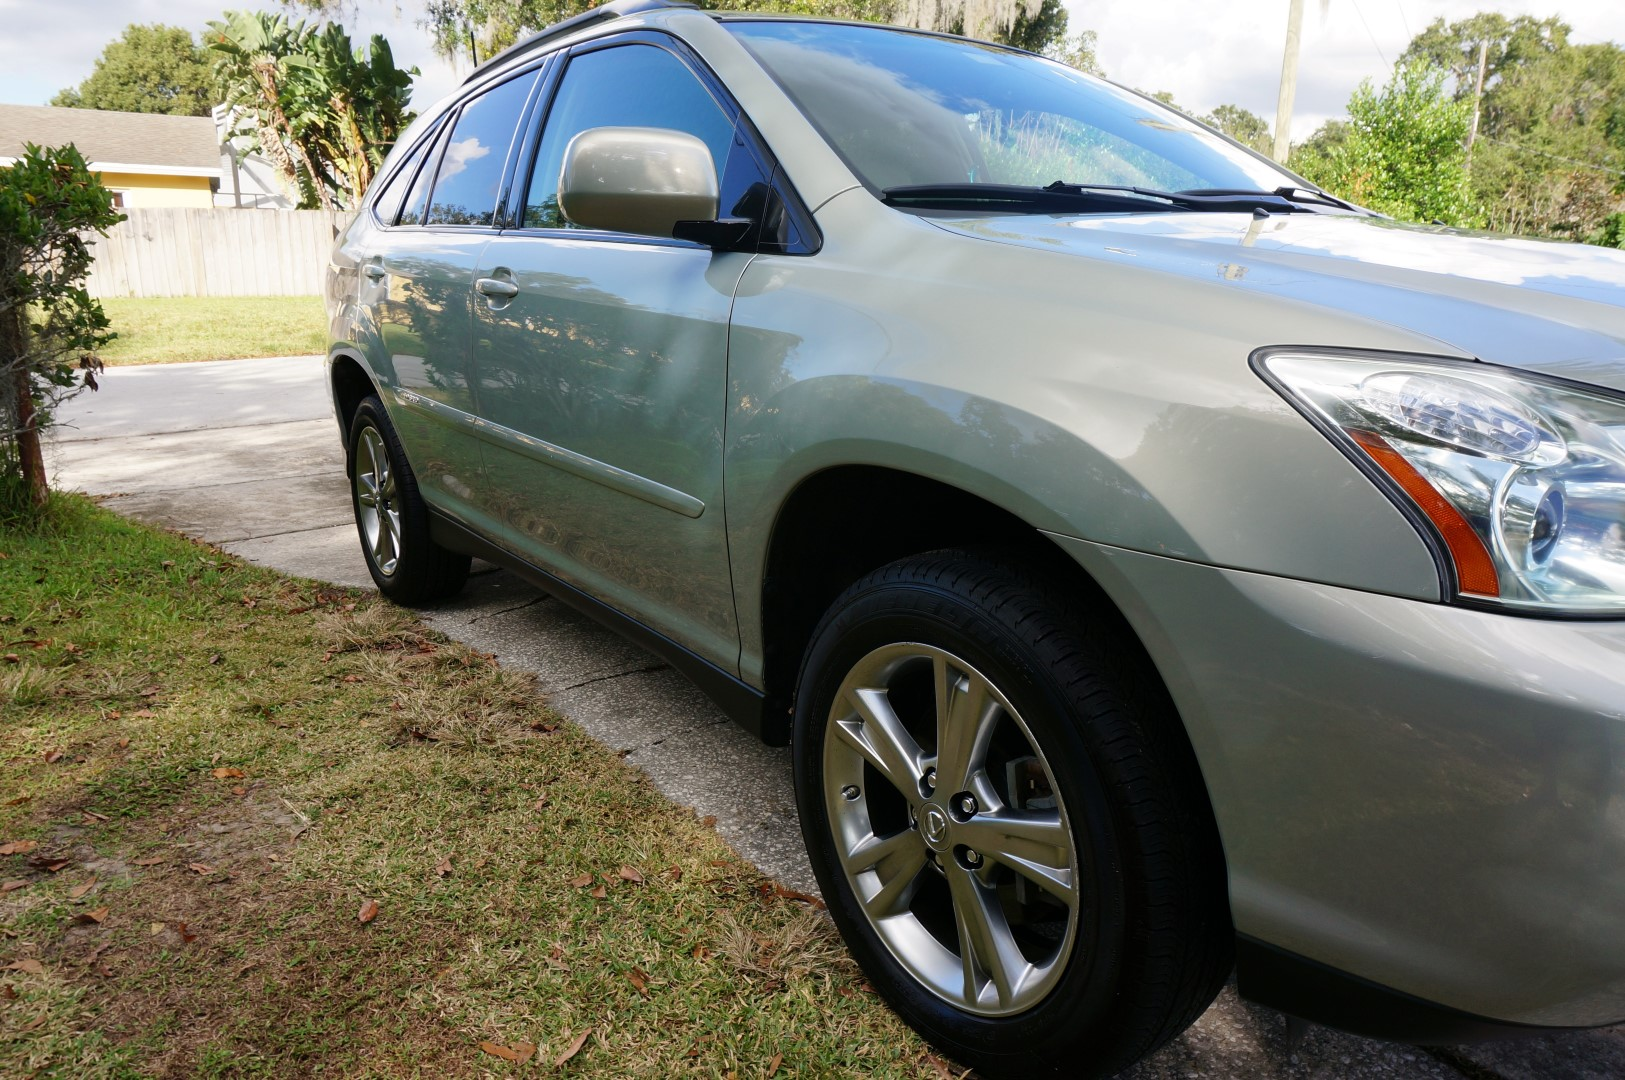 2007 lexus rx400h express detail orlando mobile auto detailer zen auto detailing. Black Bedroom Furniture Sets. Home Design Ideas